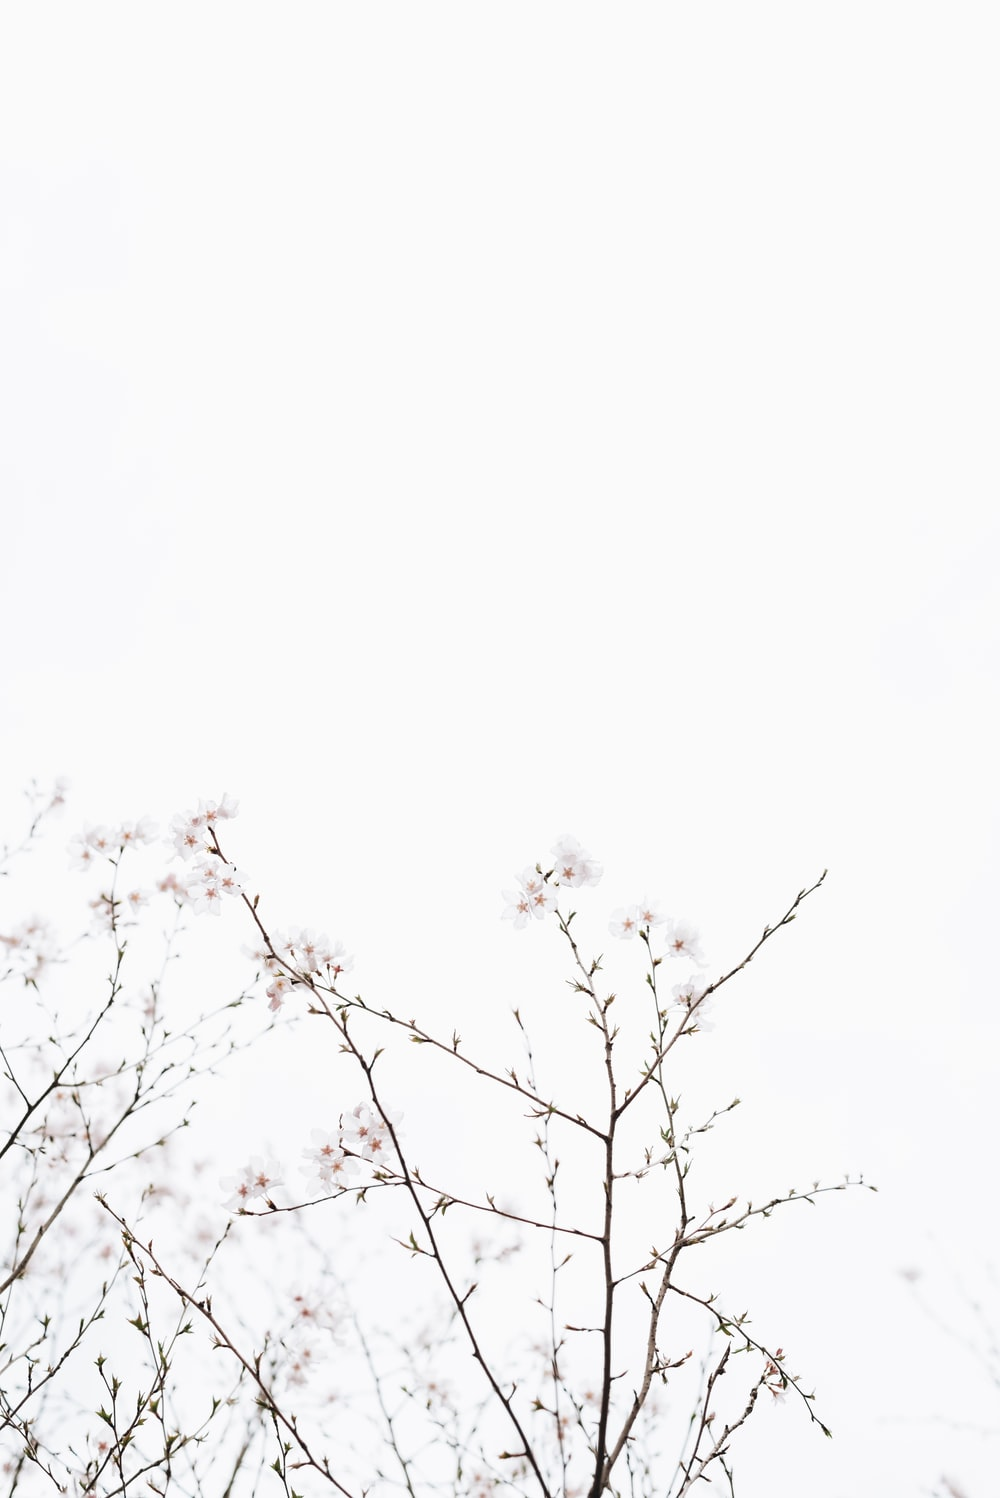 white cherry blossoms under white sky at dayime